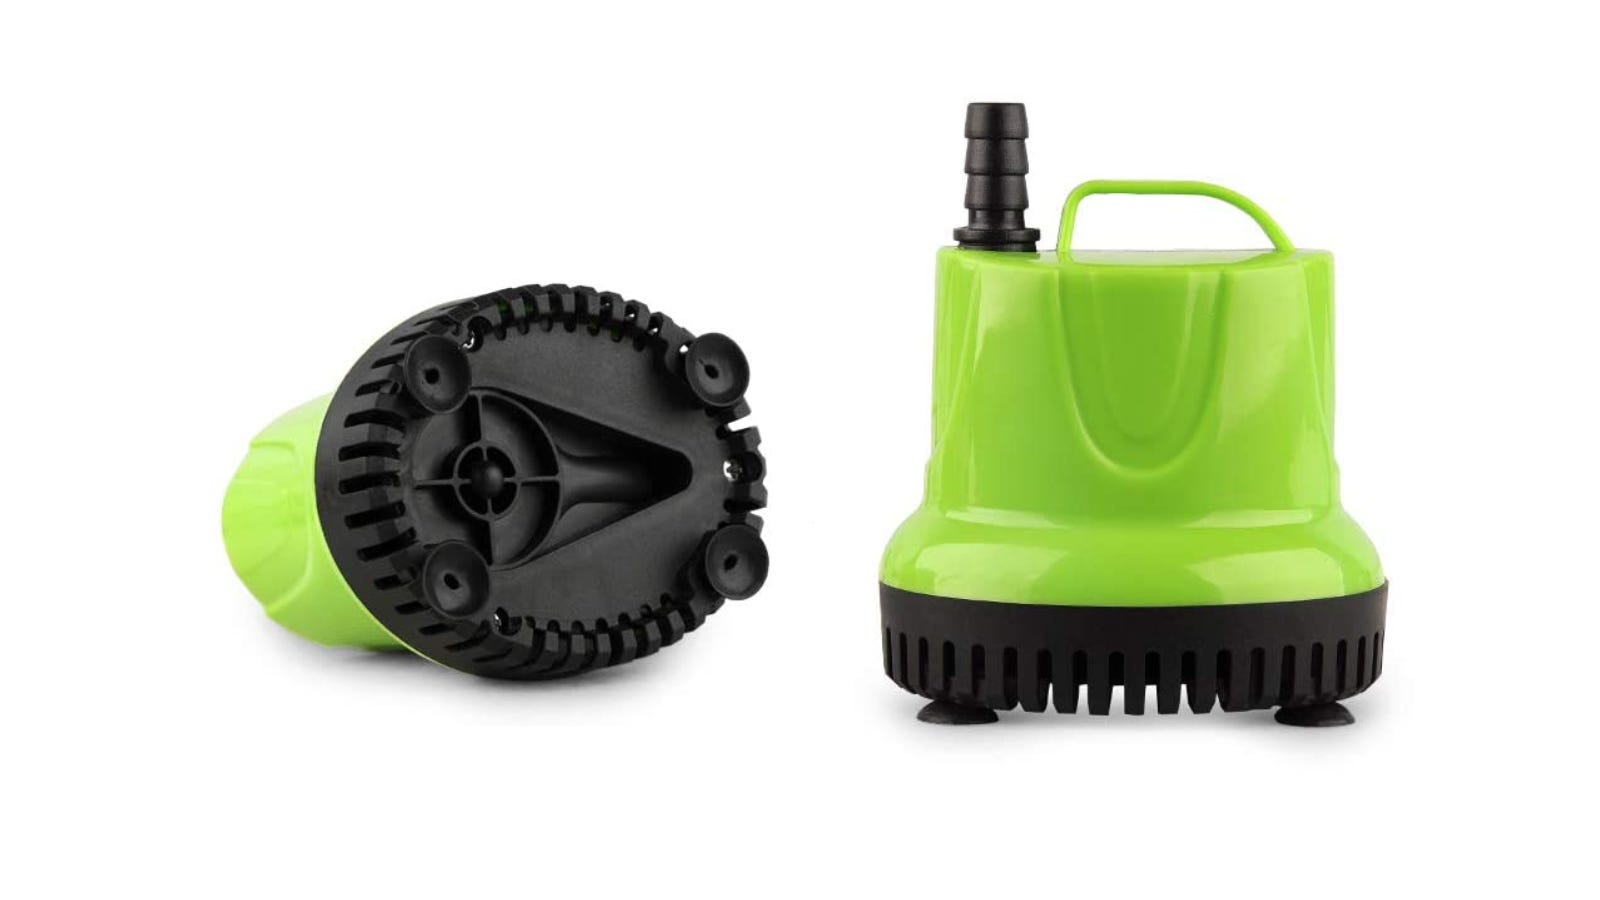 The green and black FREESEA water pump laying on its side on the left of the picture. On the right, a sideview of the same water pump.